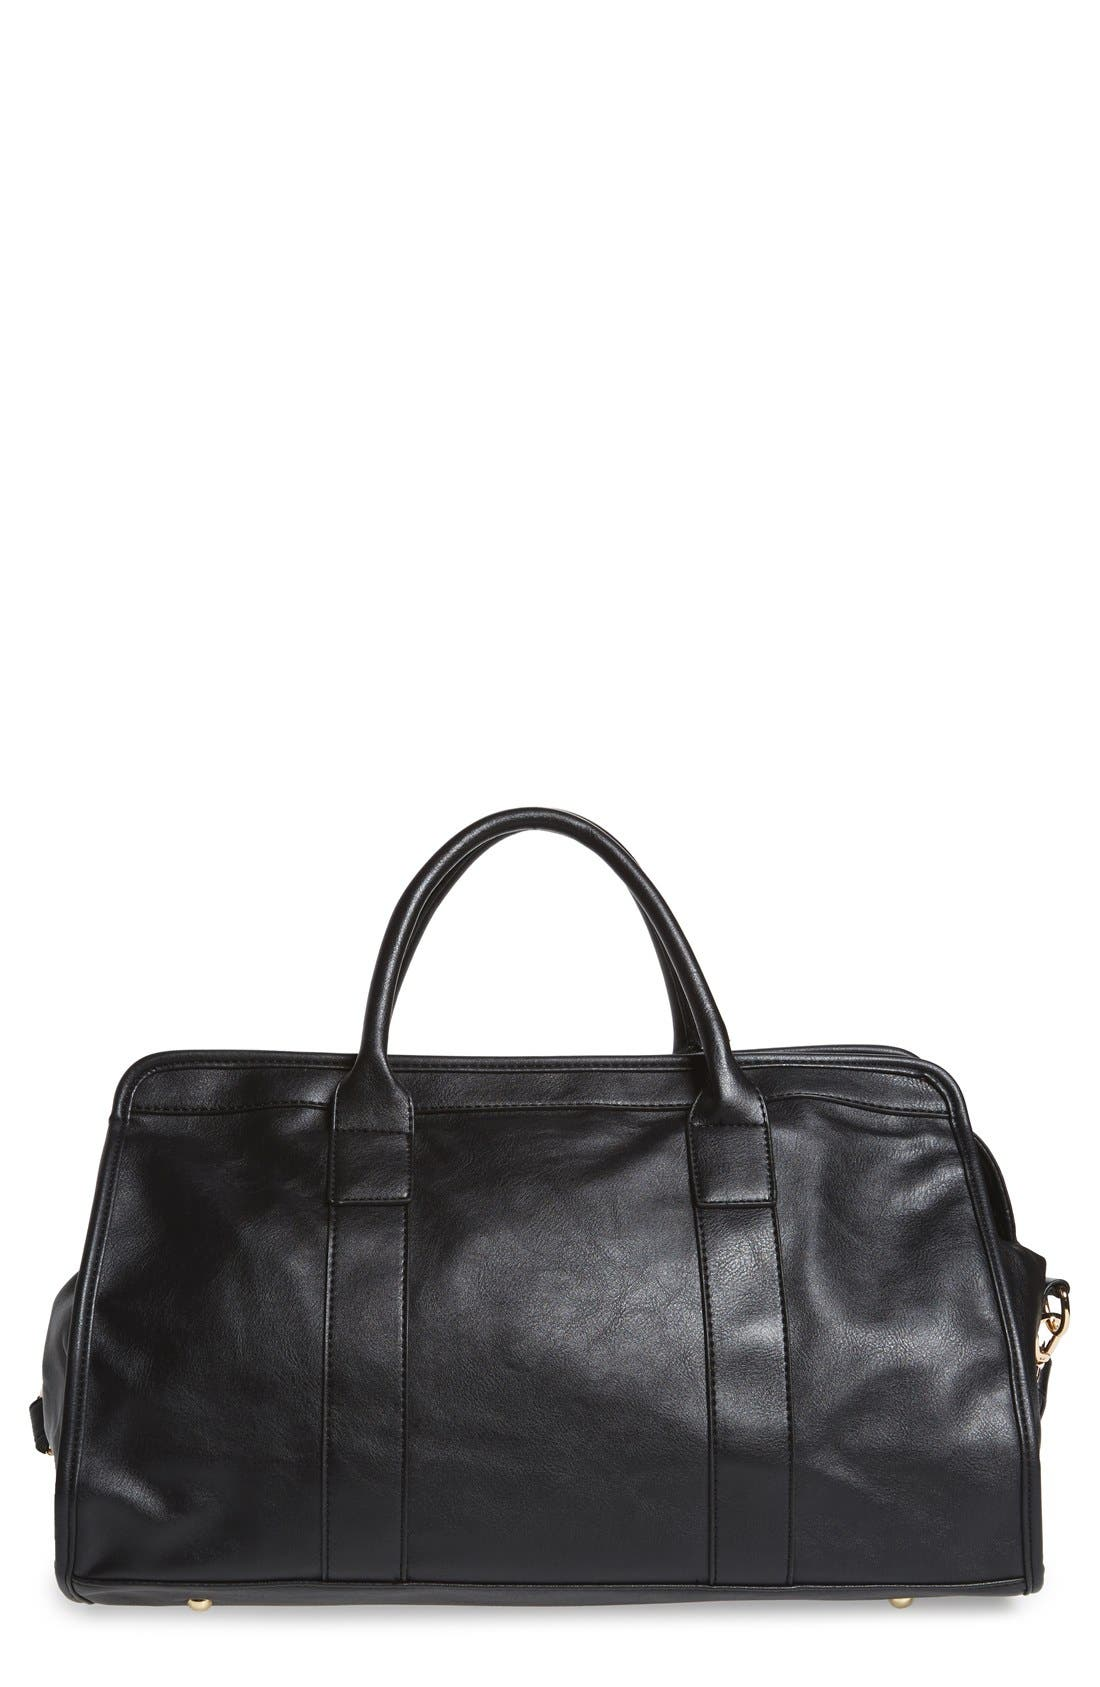 Alternate Image 1 Selected - NU-G Faux Leather Overnighter Bag